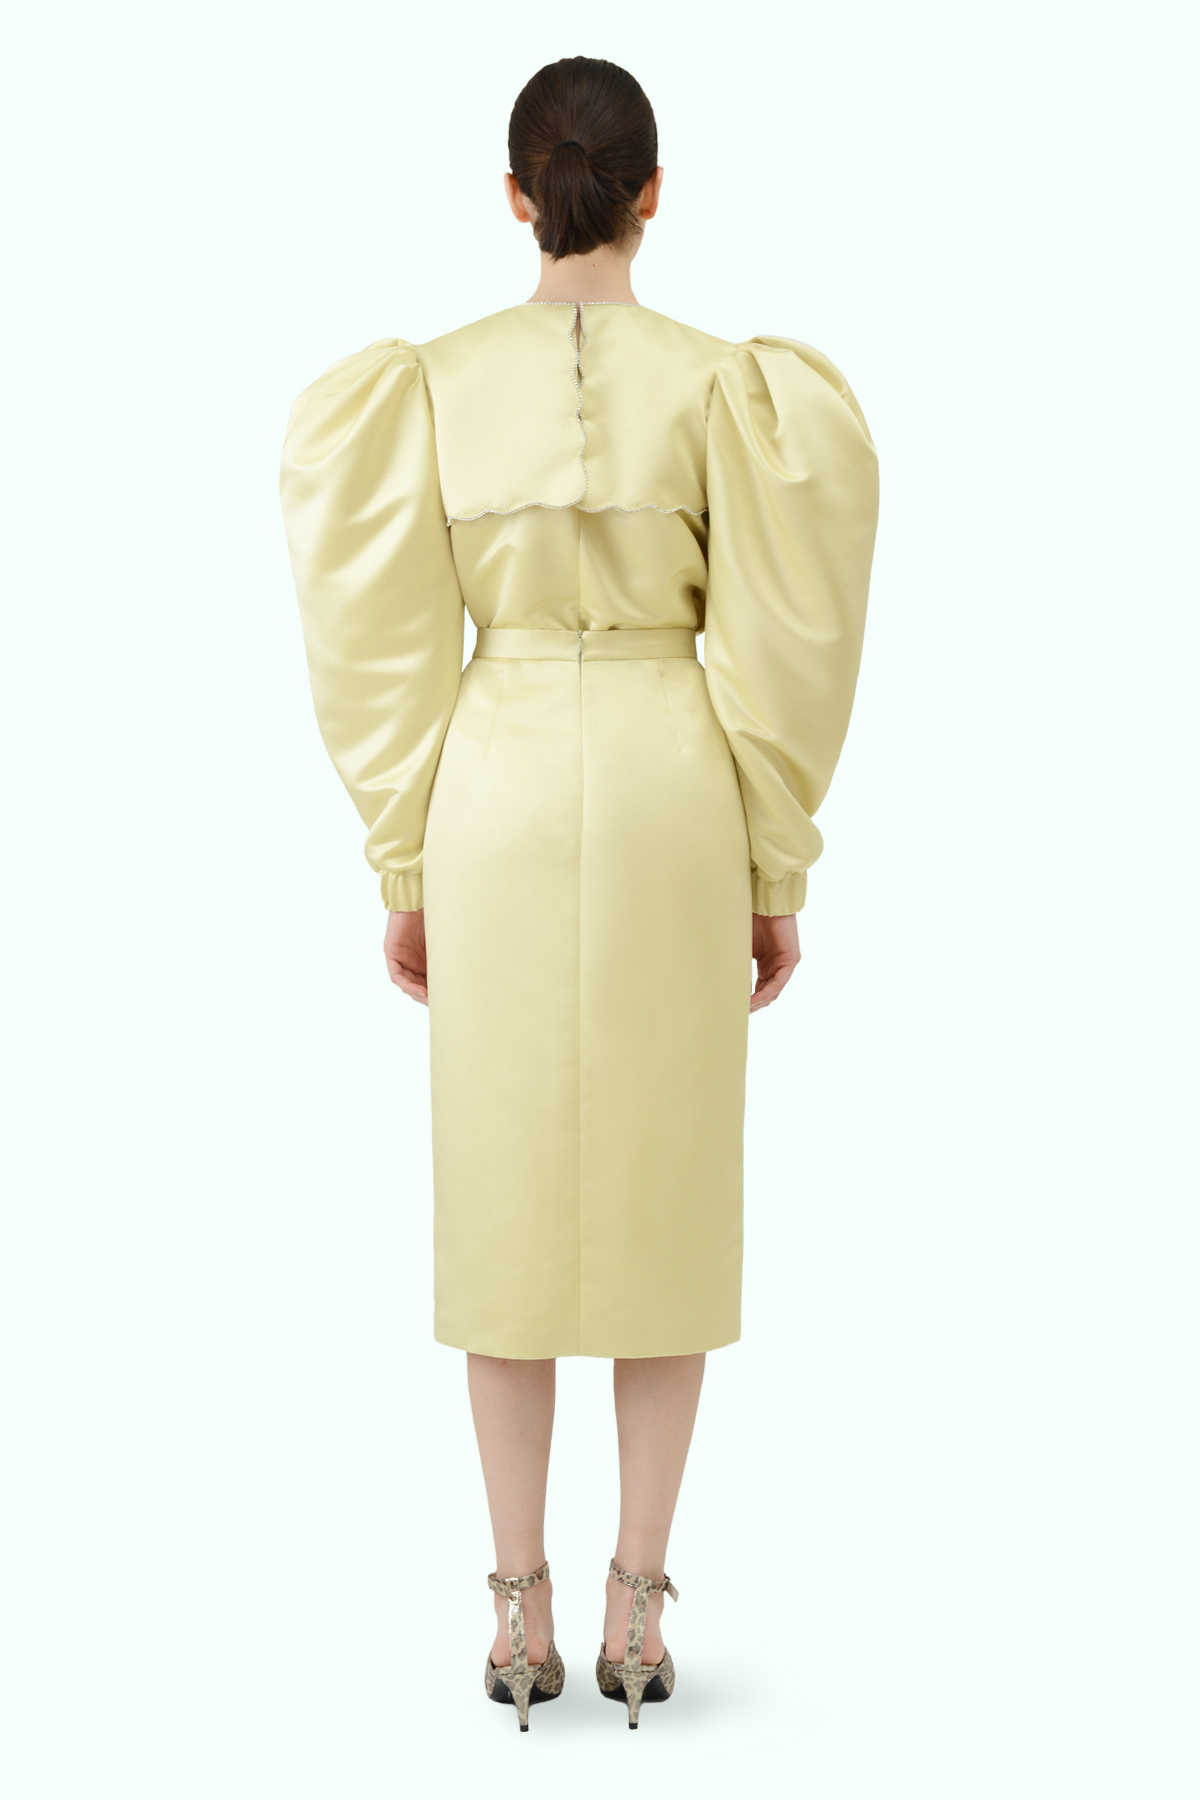 Puff sleeve yellow top with puritan collar and embroidered crystals 3